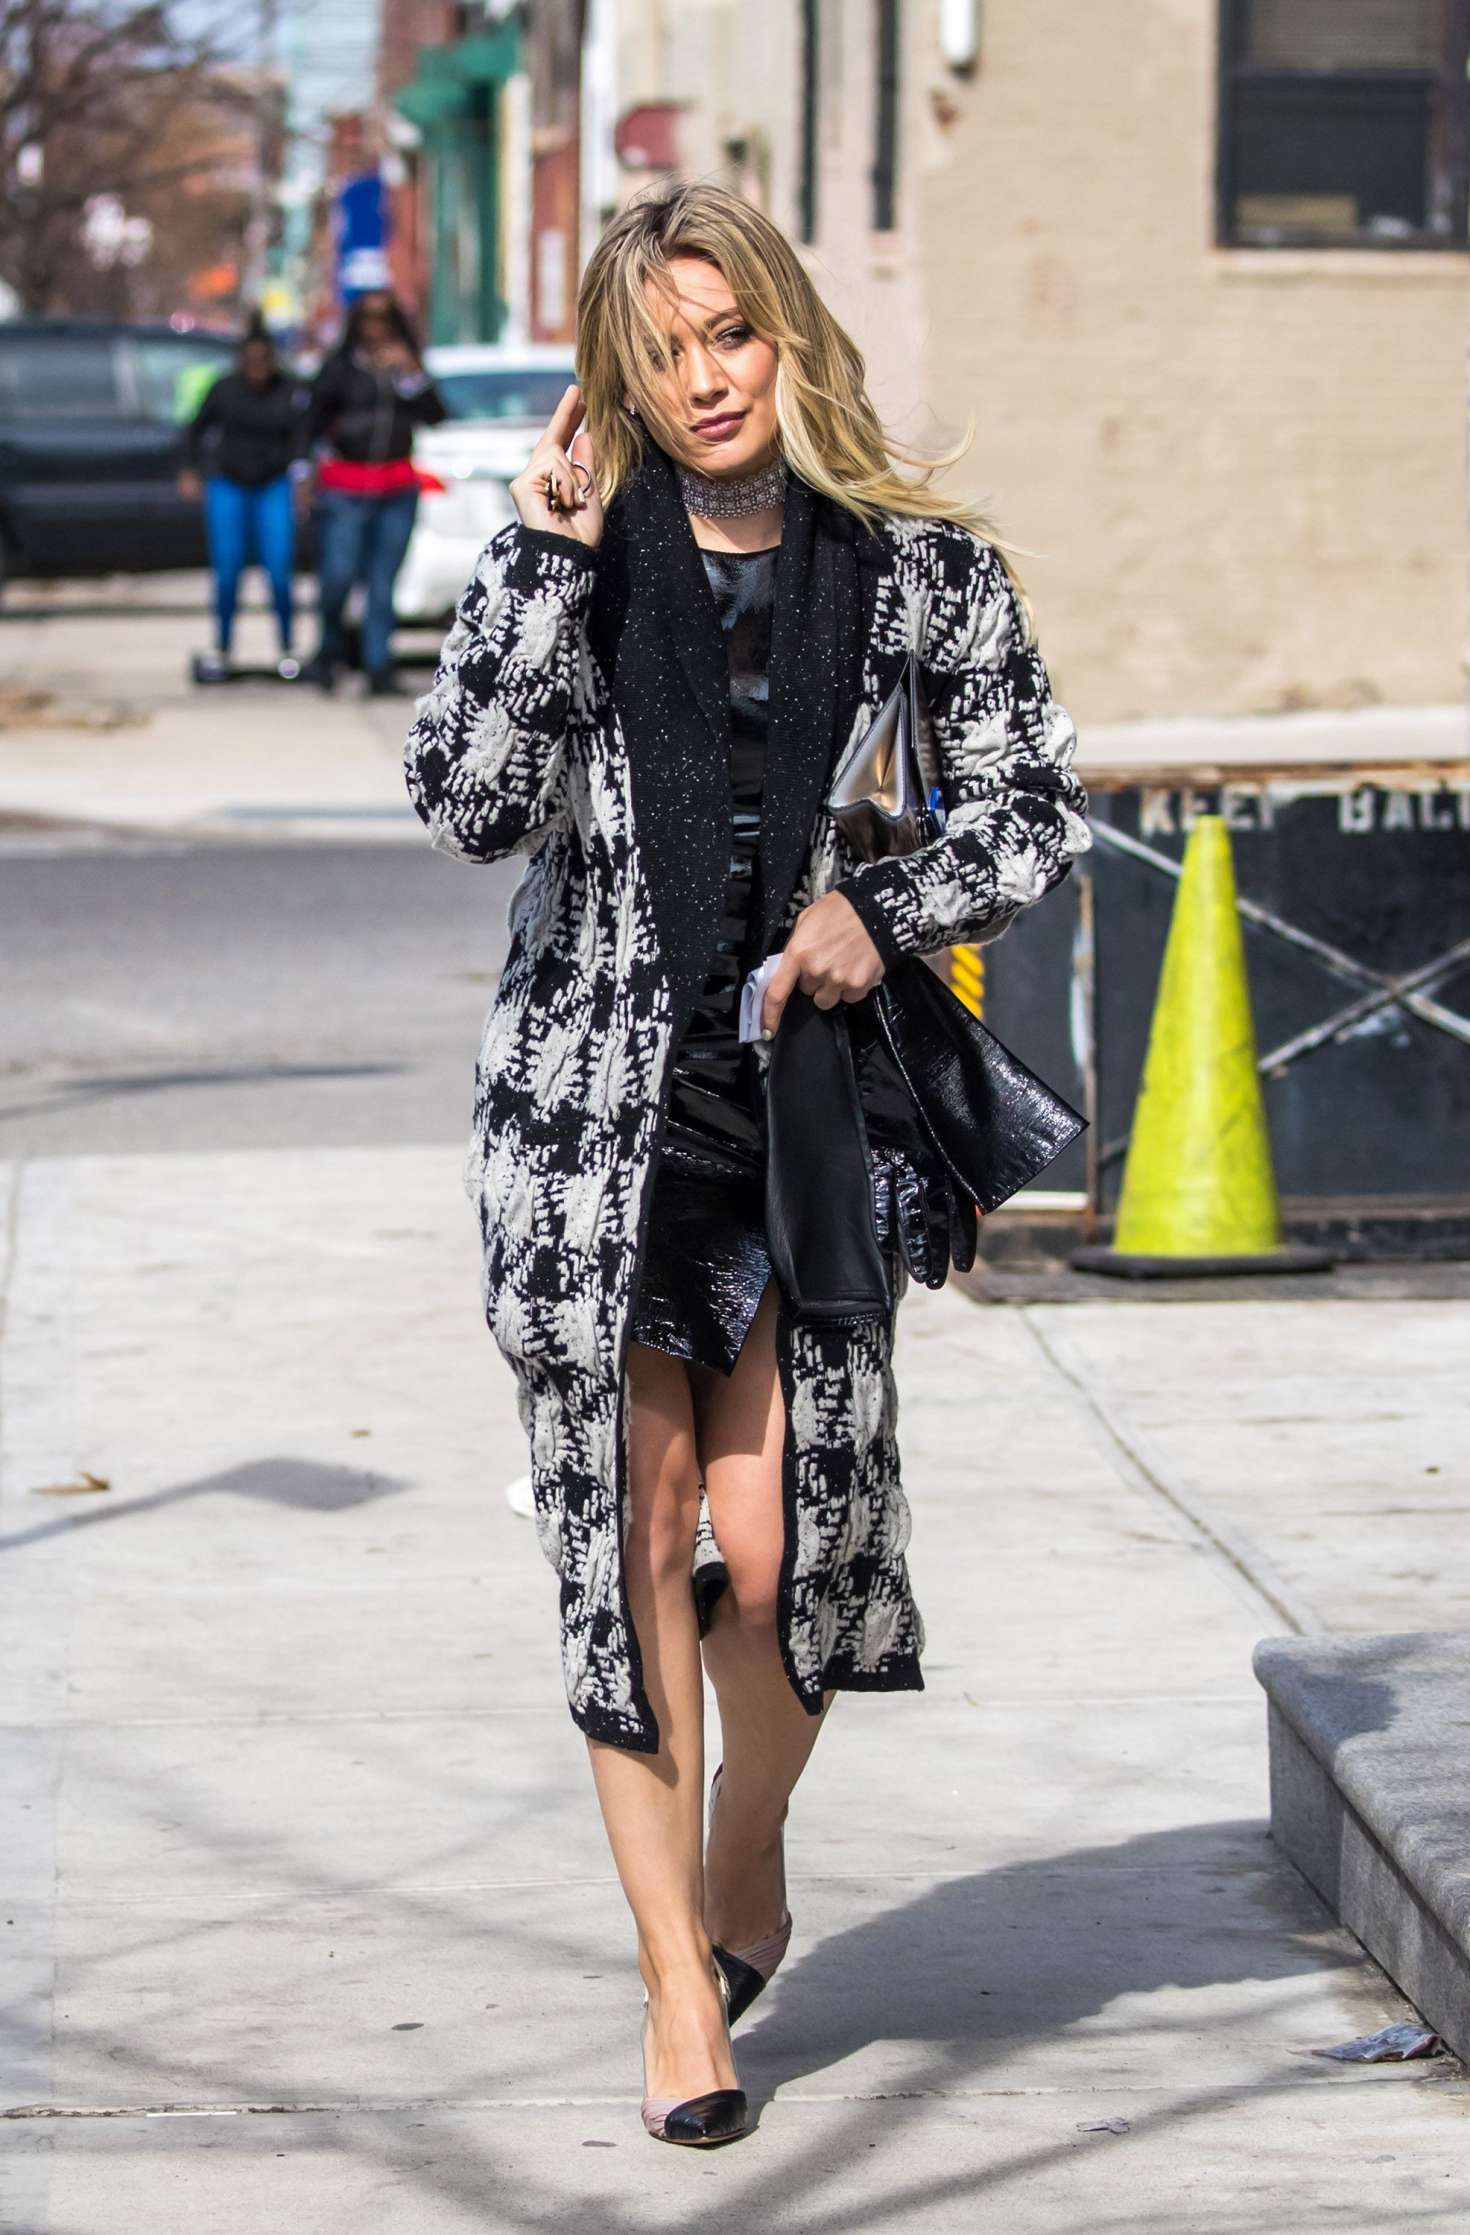 Hilary Duff 2015 : Hilary Duff on the set of Younger -17